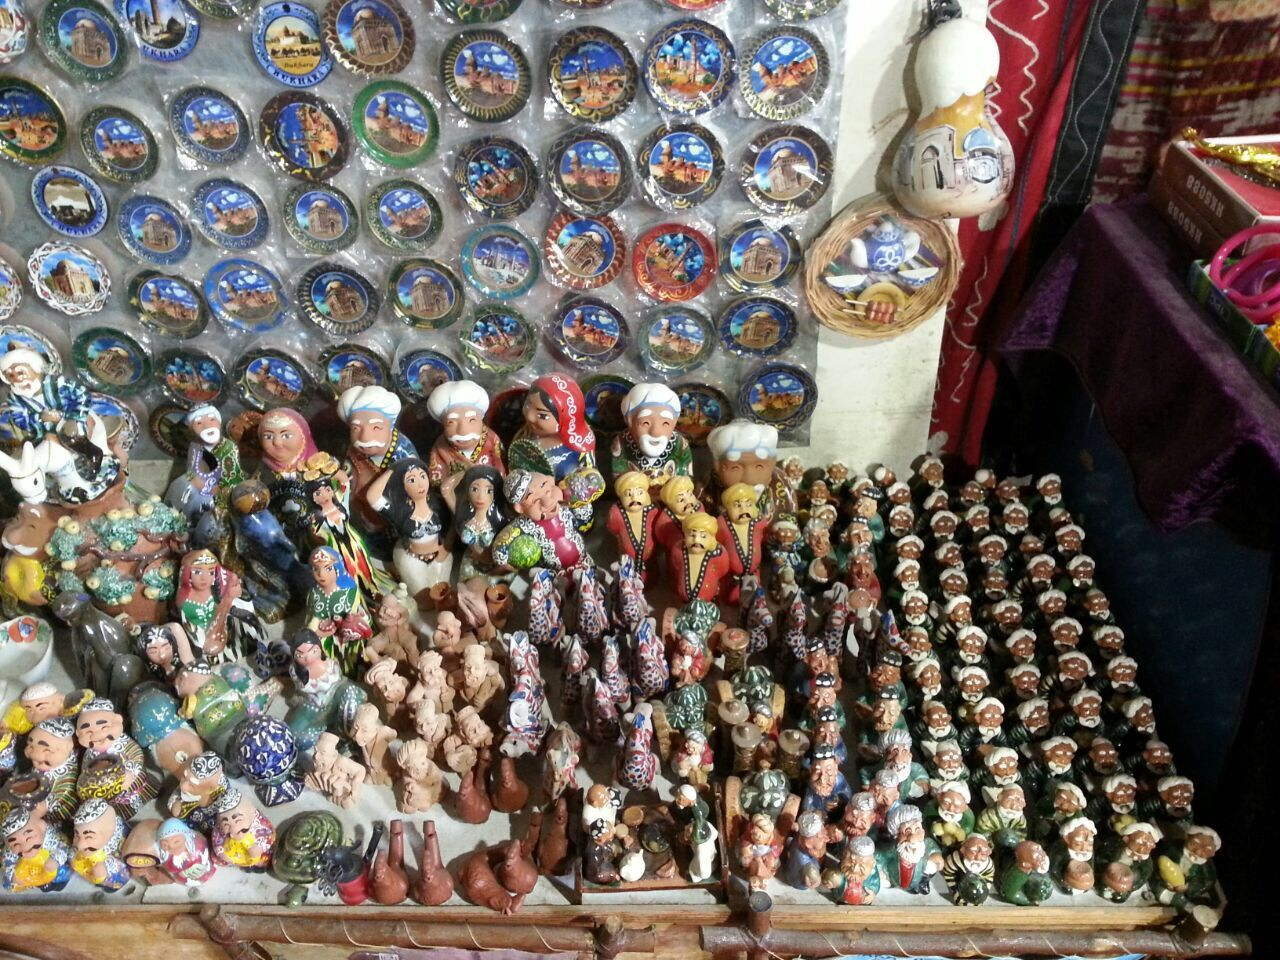 Traditional ceramic babaychiki (small figures) reflect the peculiarities of culture and life of Uzbekistan